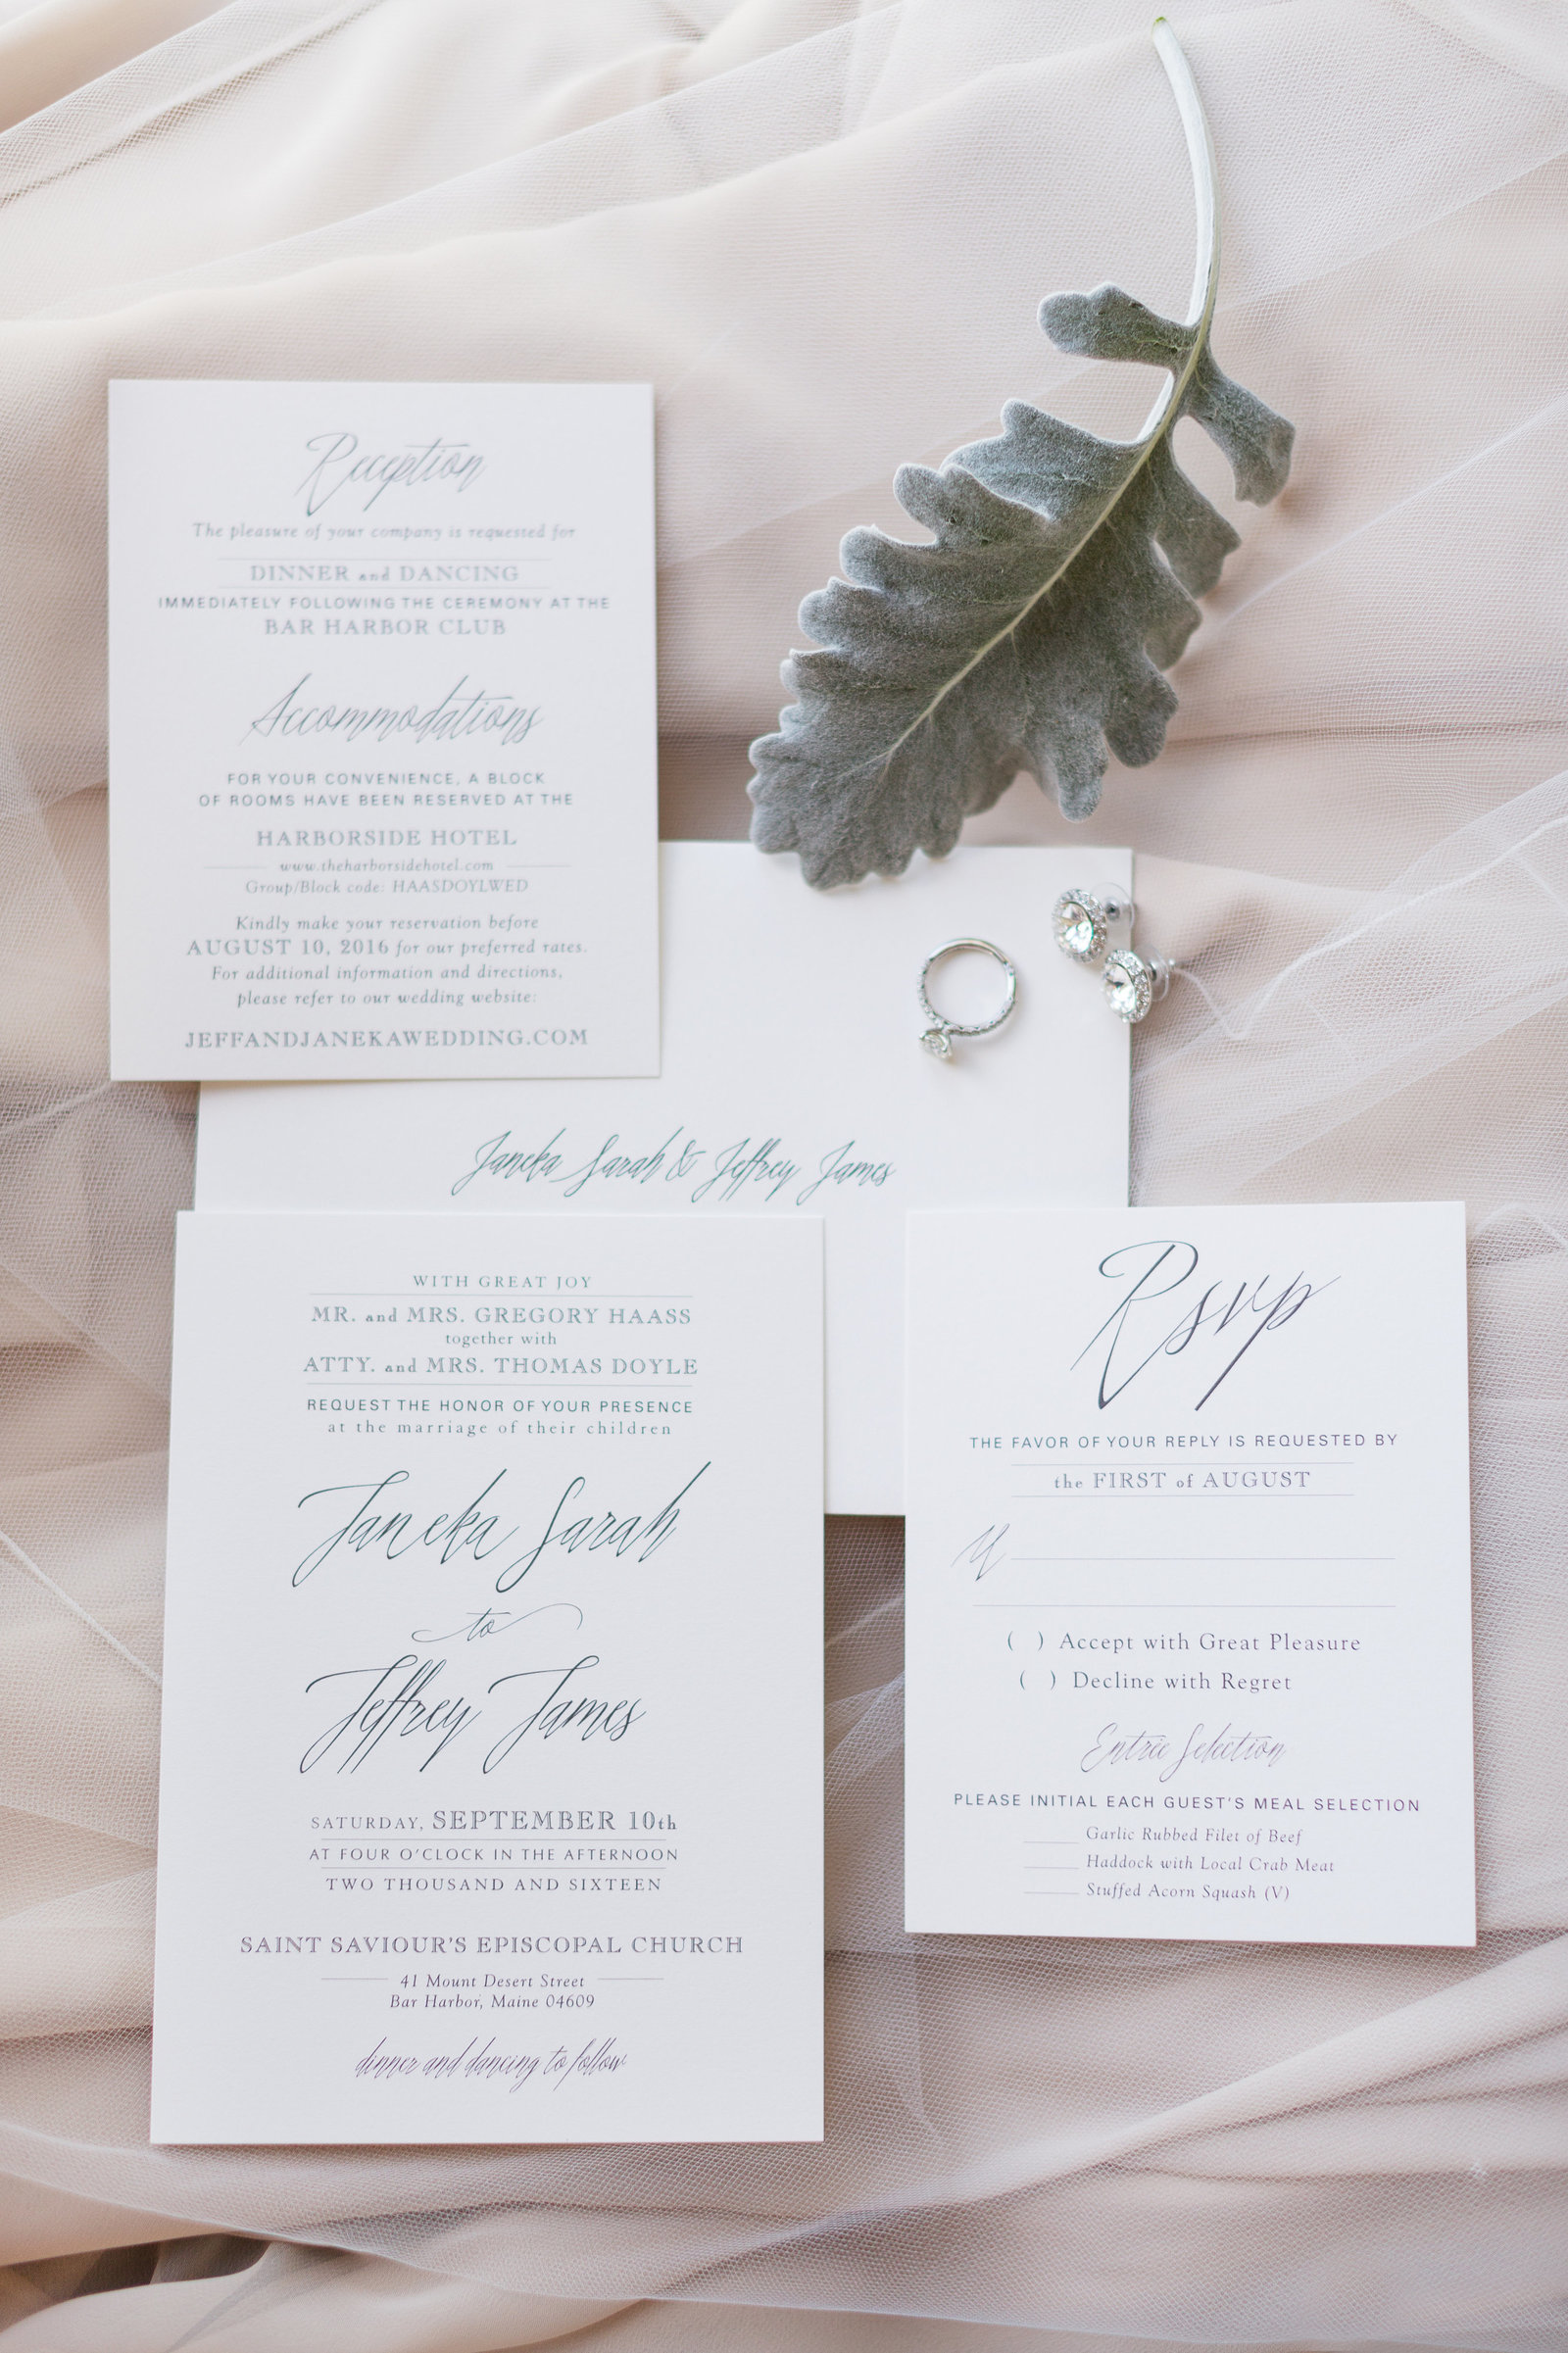 Blush Wedding Invitation Inspiration